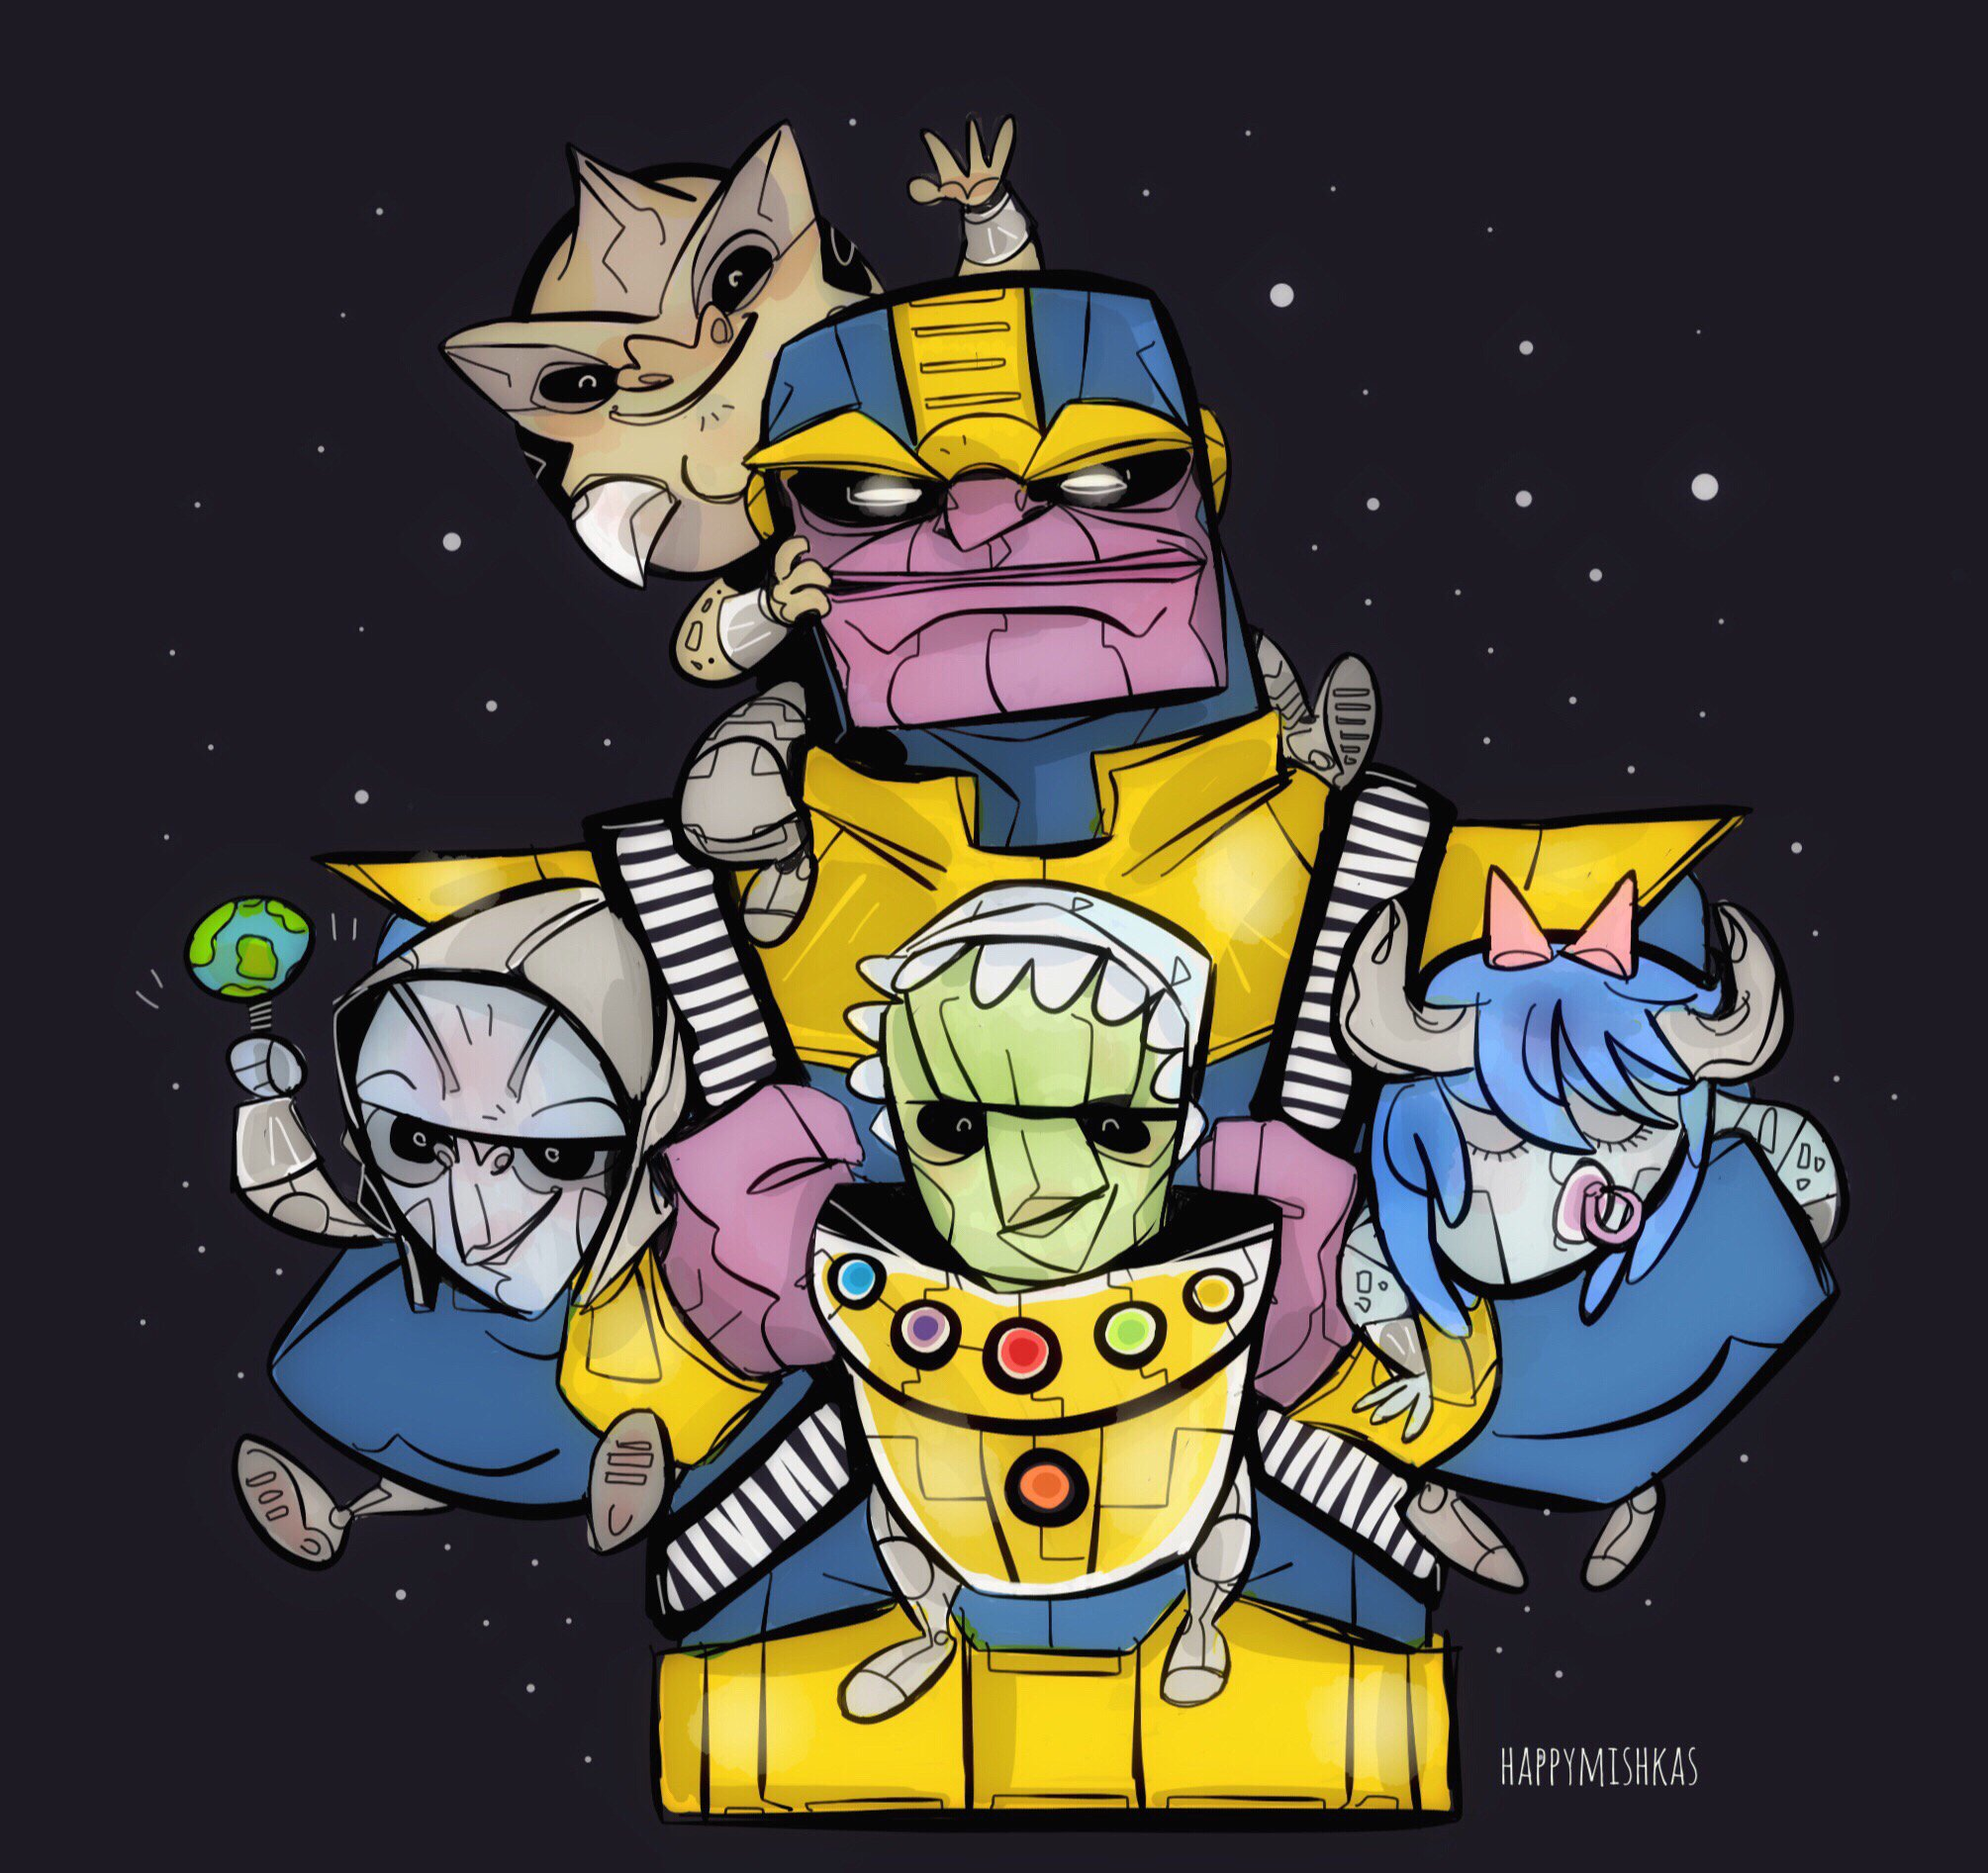 Thanos Presents Other Infinity Apparel: The Infinity Baby Bjorn by @ForestRowell https://t.co/Txy2roIMNd